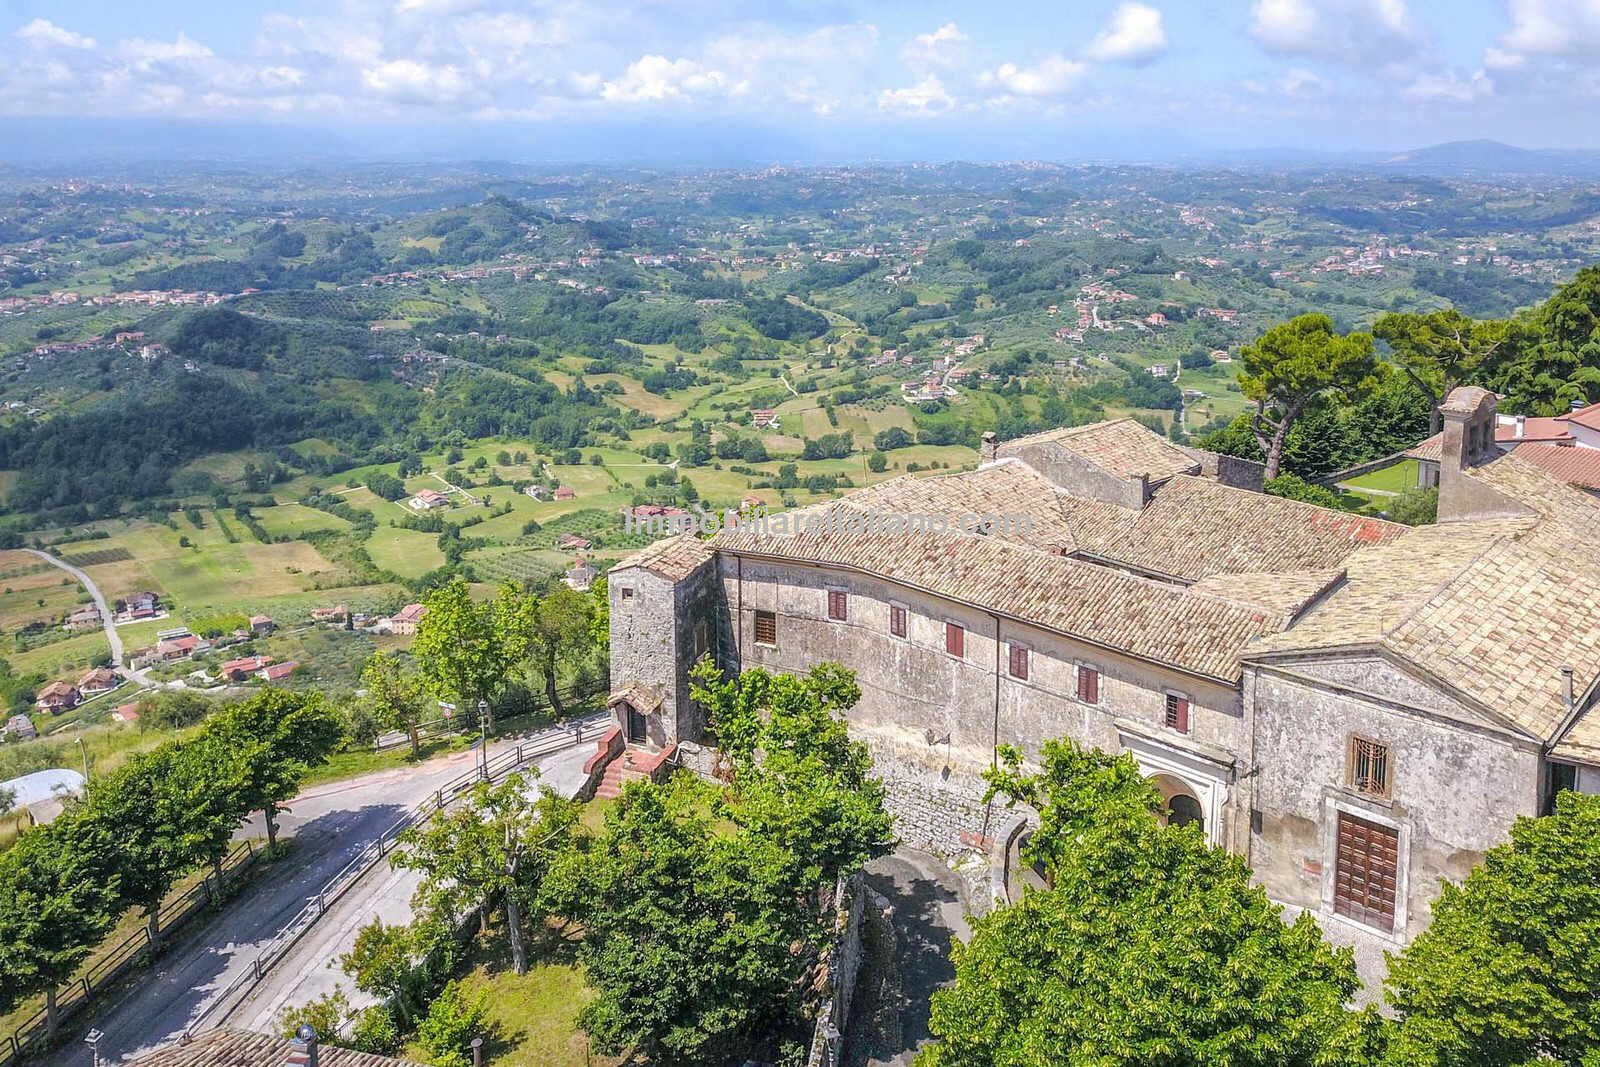 Aerial view of Monastery for sale in Italy